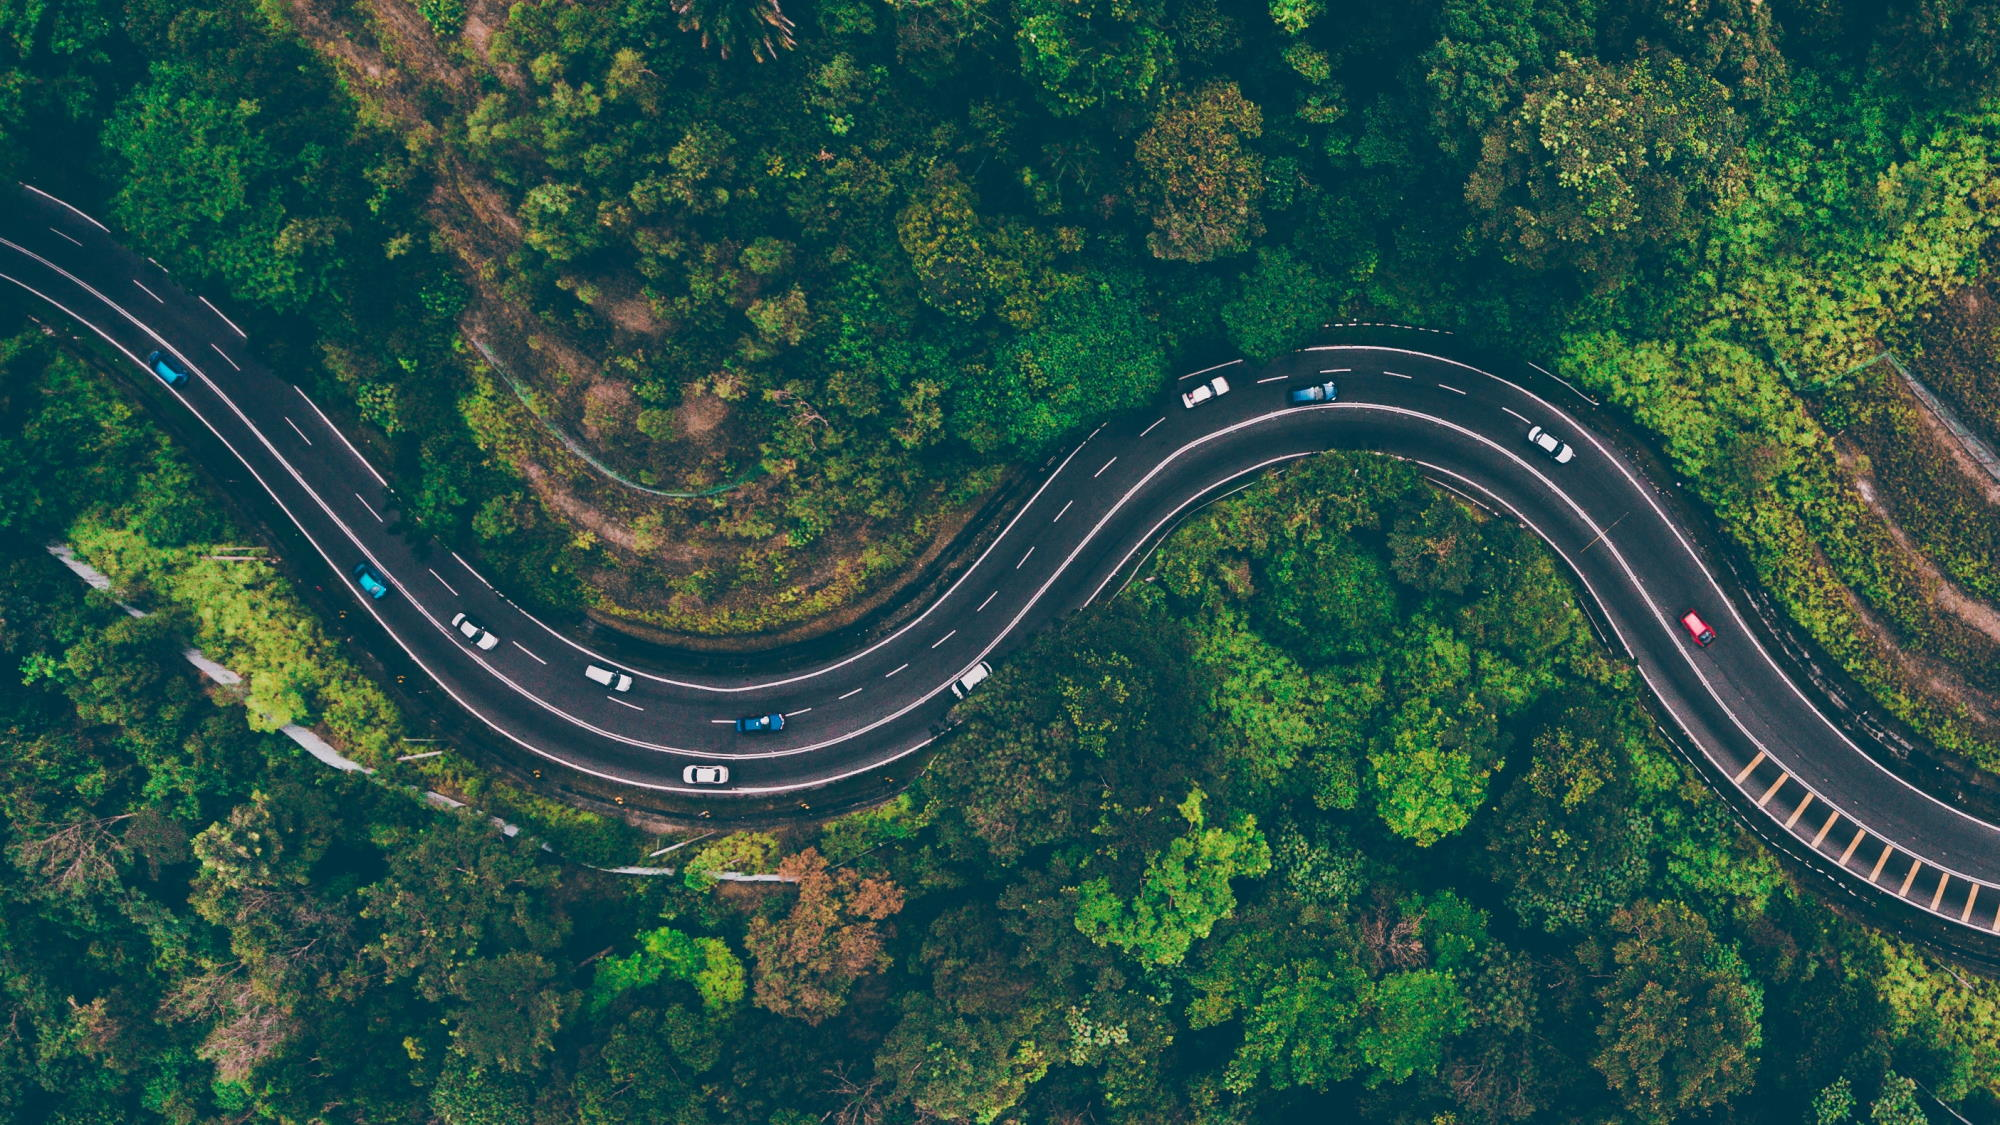 aerial view of road in the middle of trees